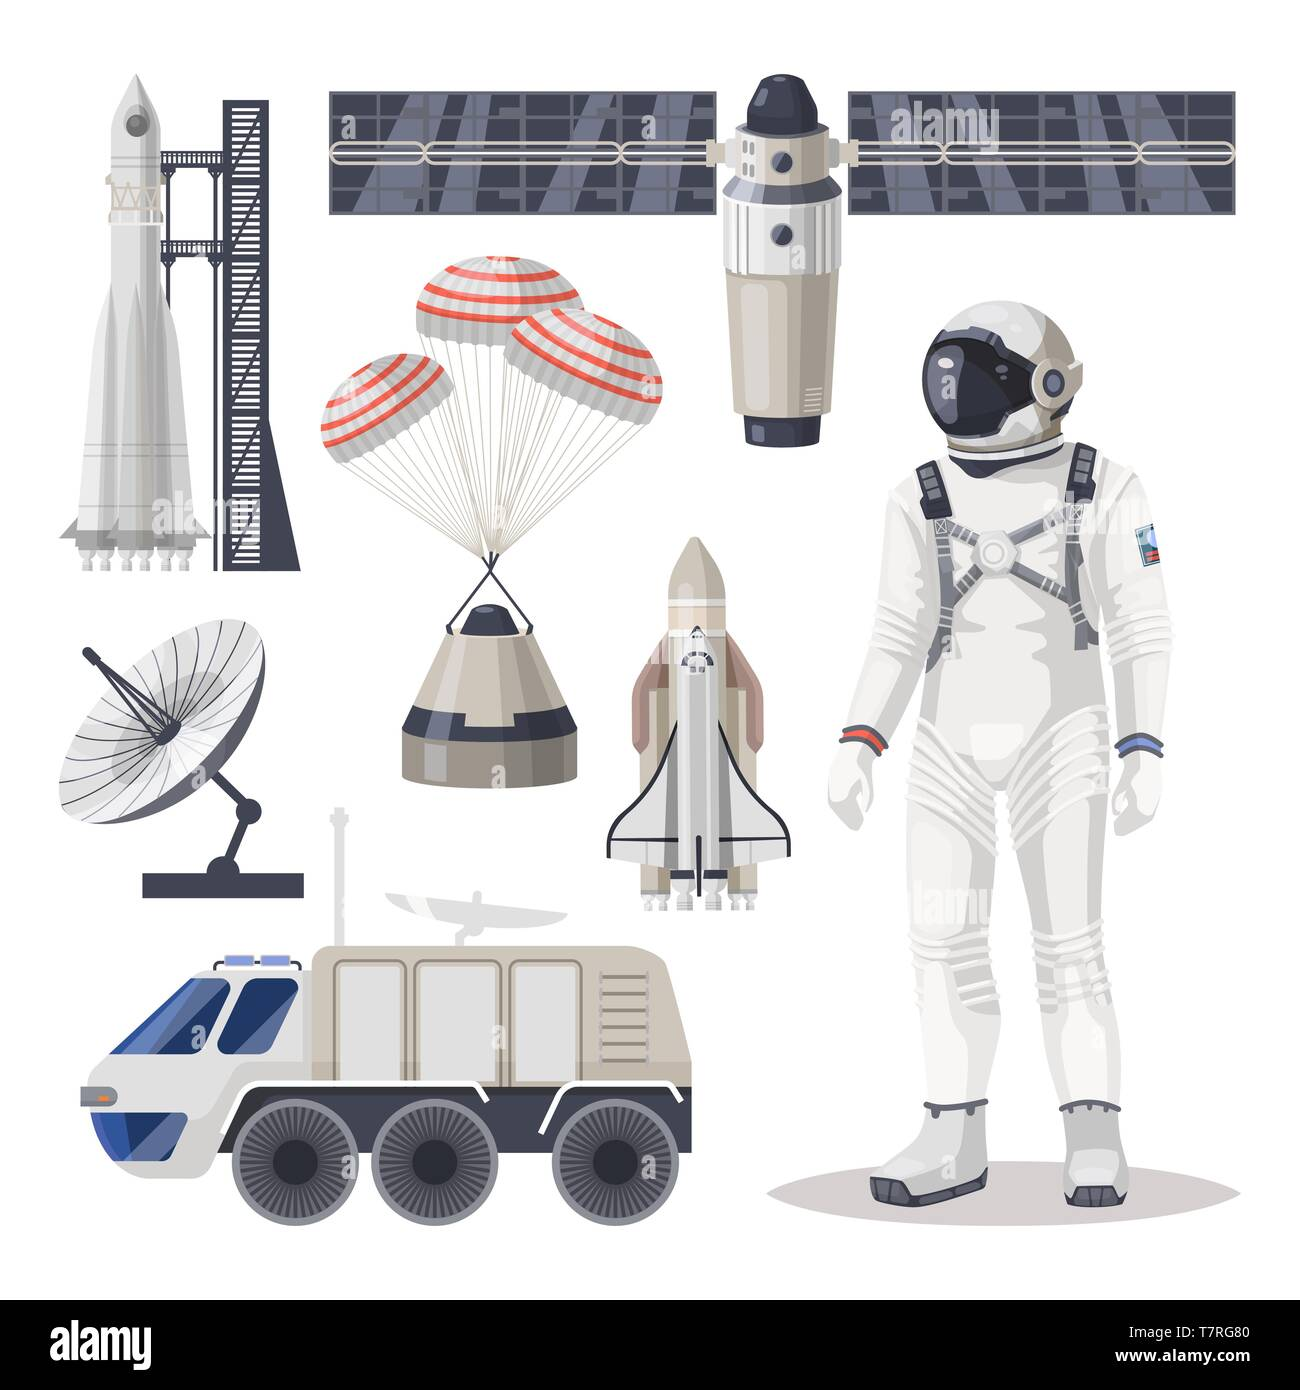 Space exploration, cosmos or Mars expedition item - Stock Image